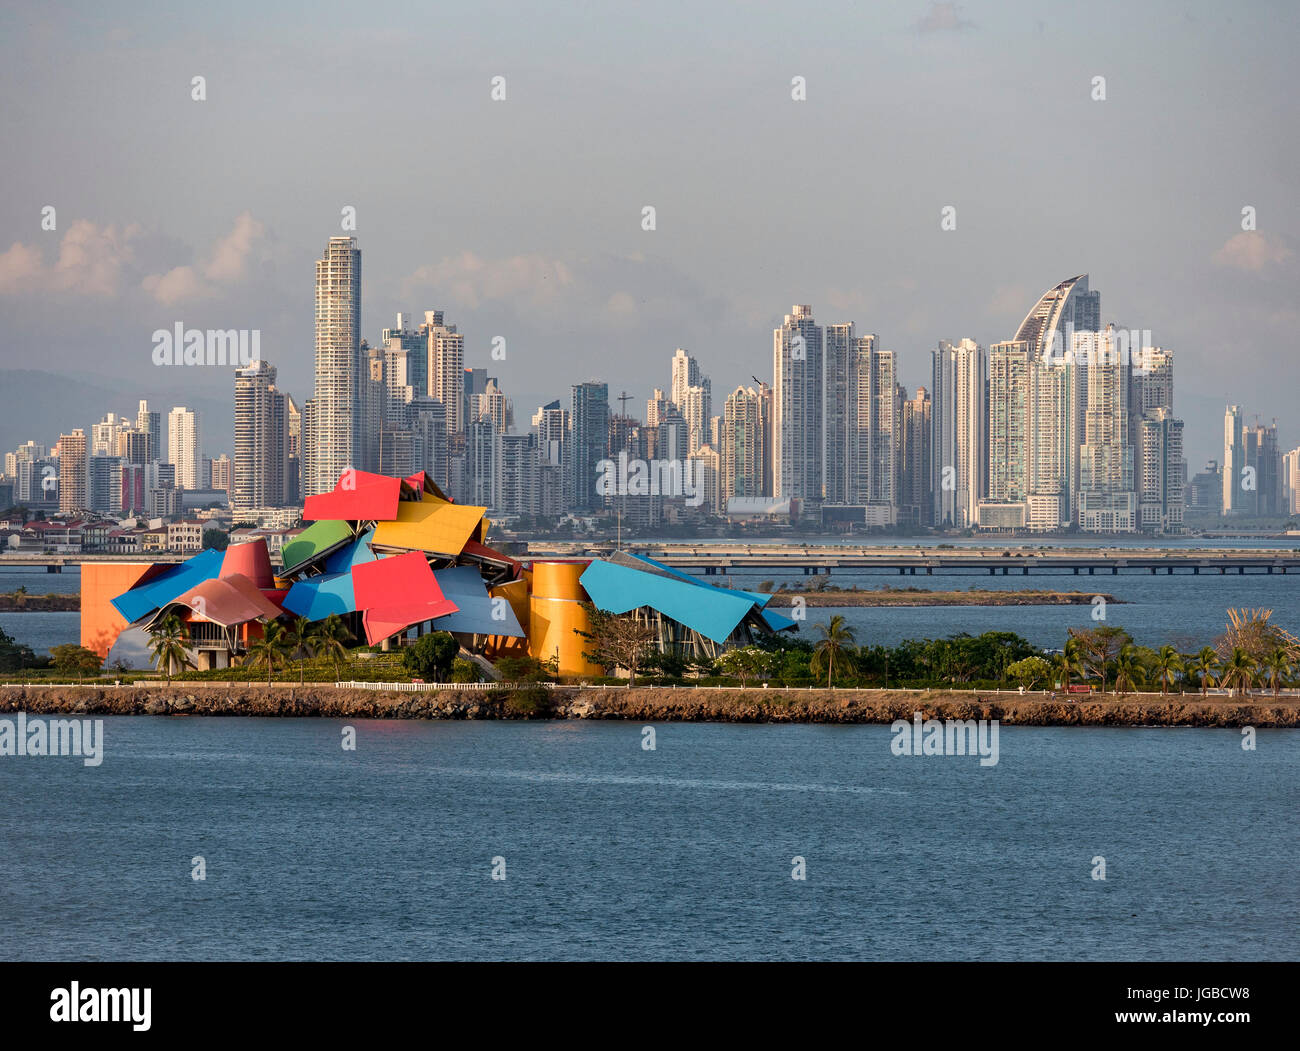 unusual-and-colourful-building-of-the-biomuseo-designed-by-frank-gehry-JGBCW8.jpg